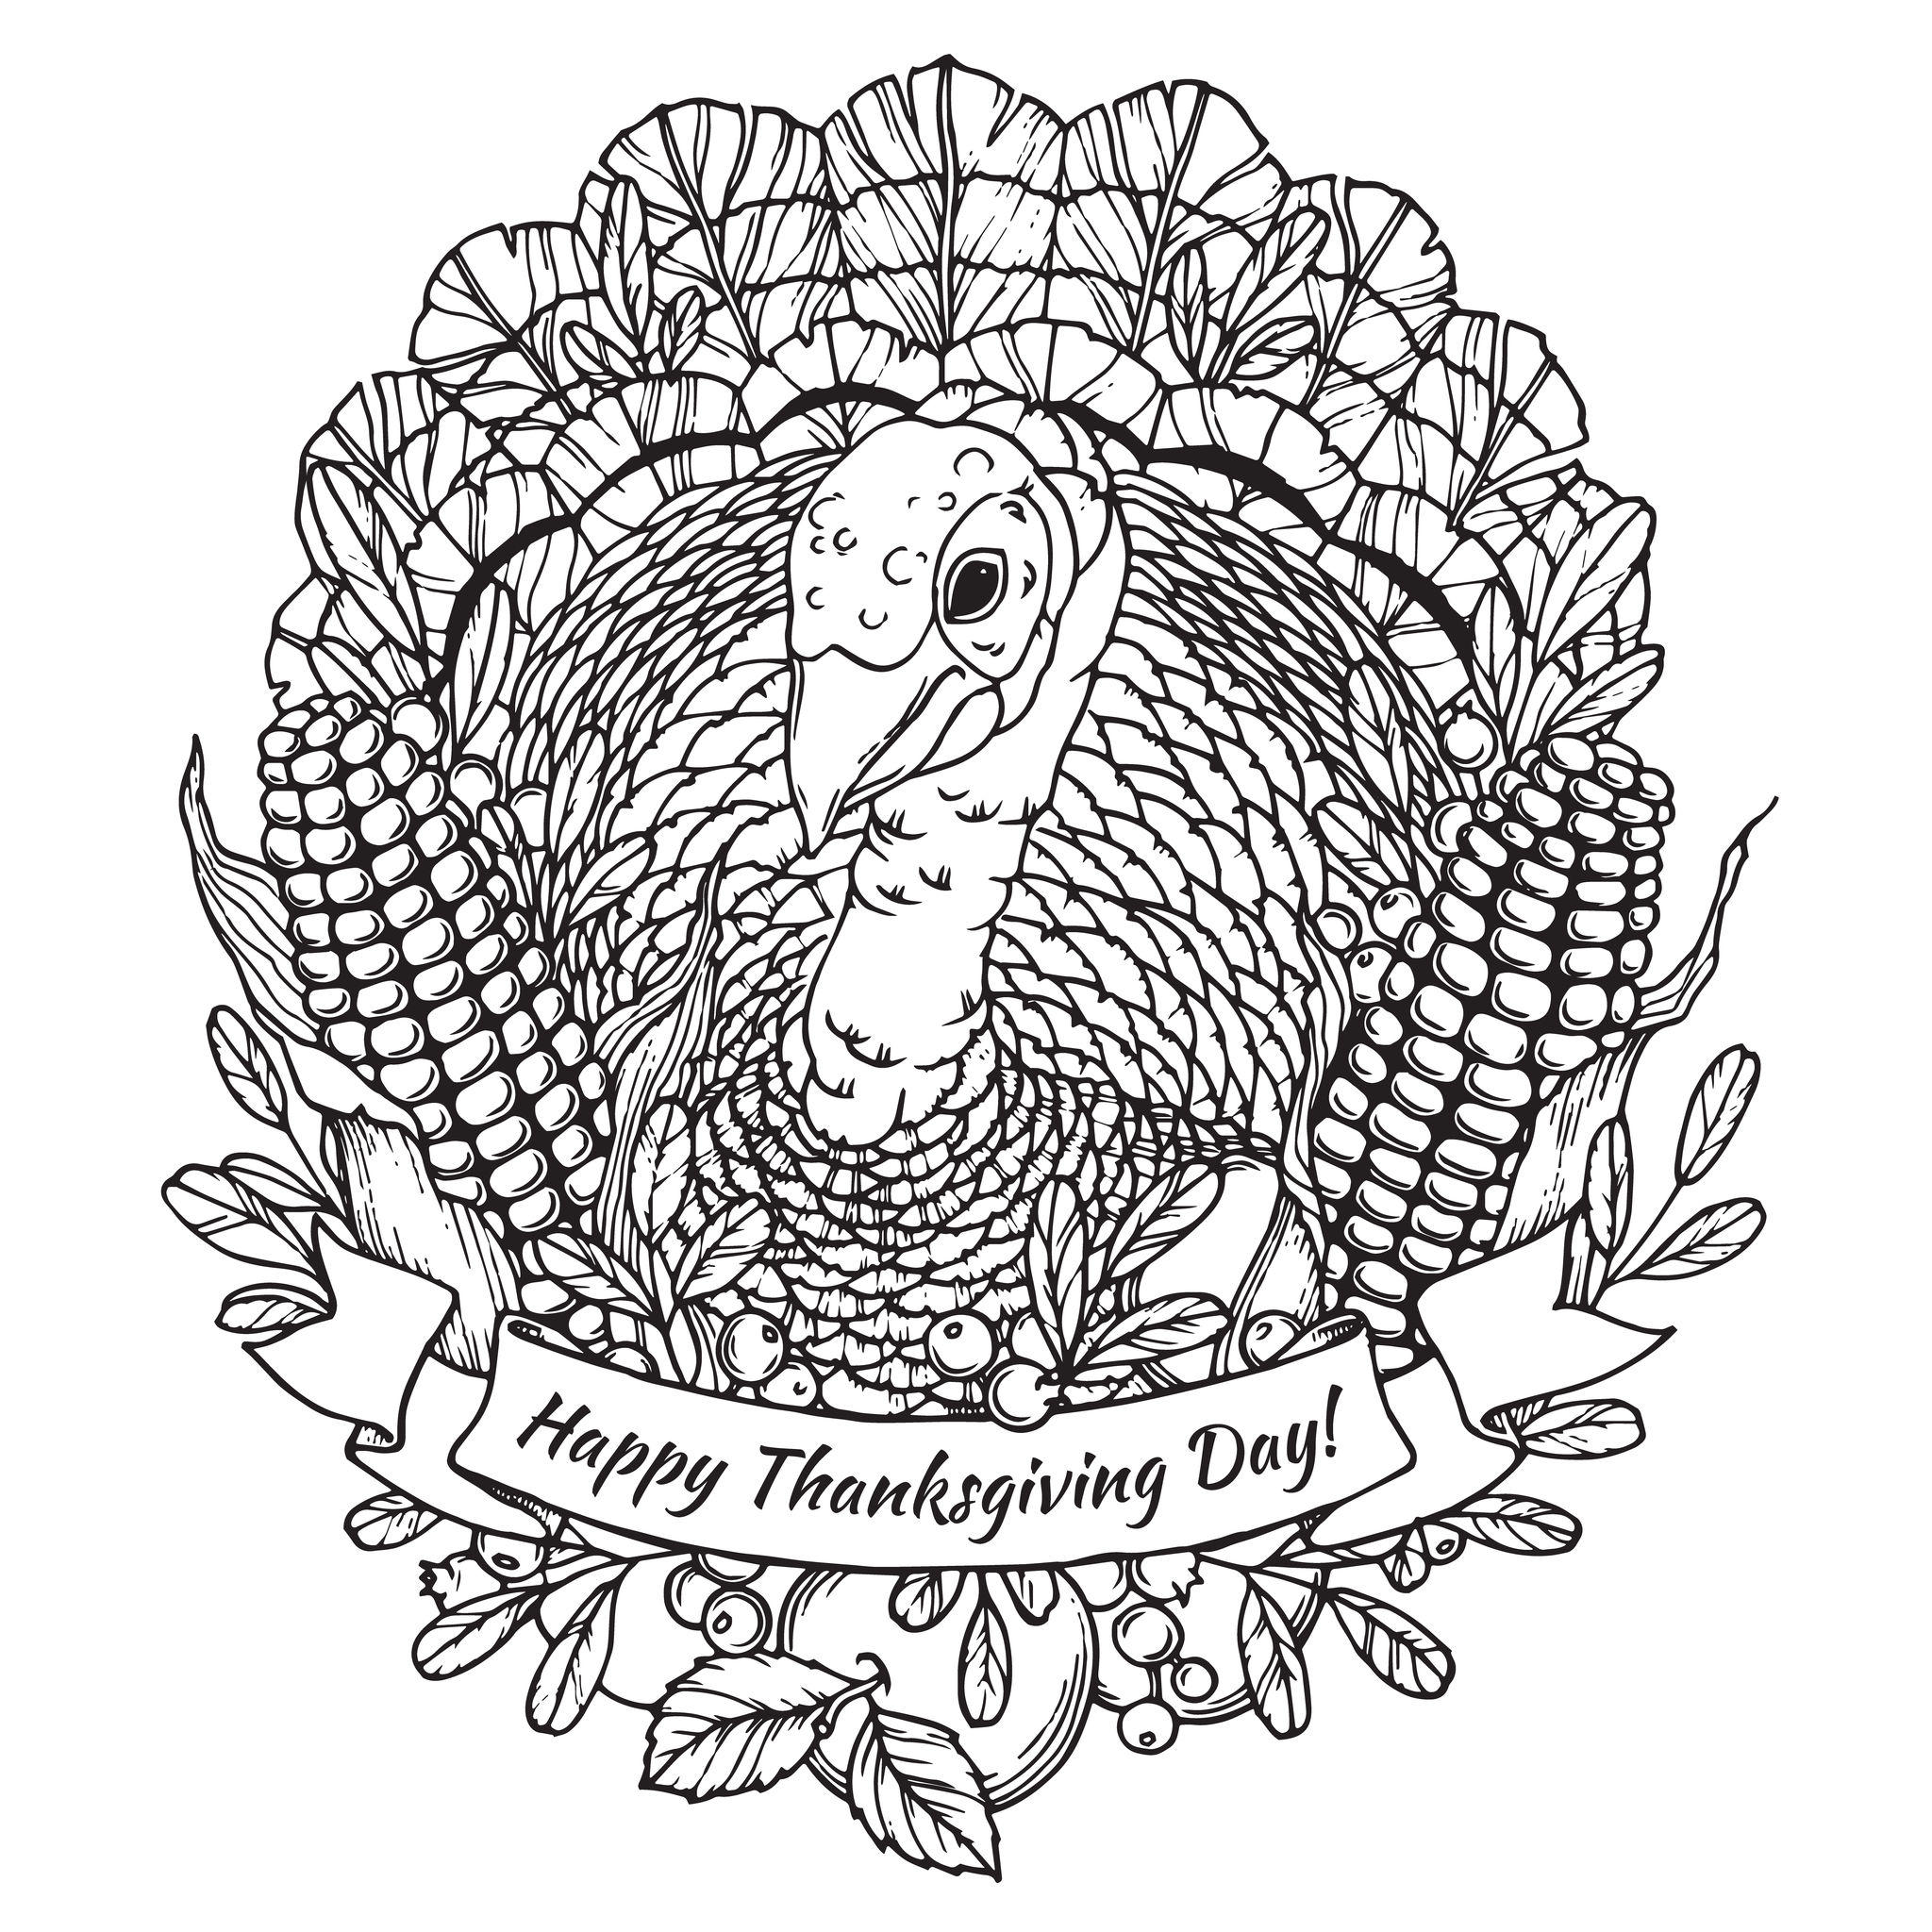 59191579 - thanksgiving day greeting card with turkey, vegetables and fruits in cartoon style. black and white